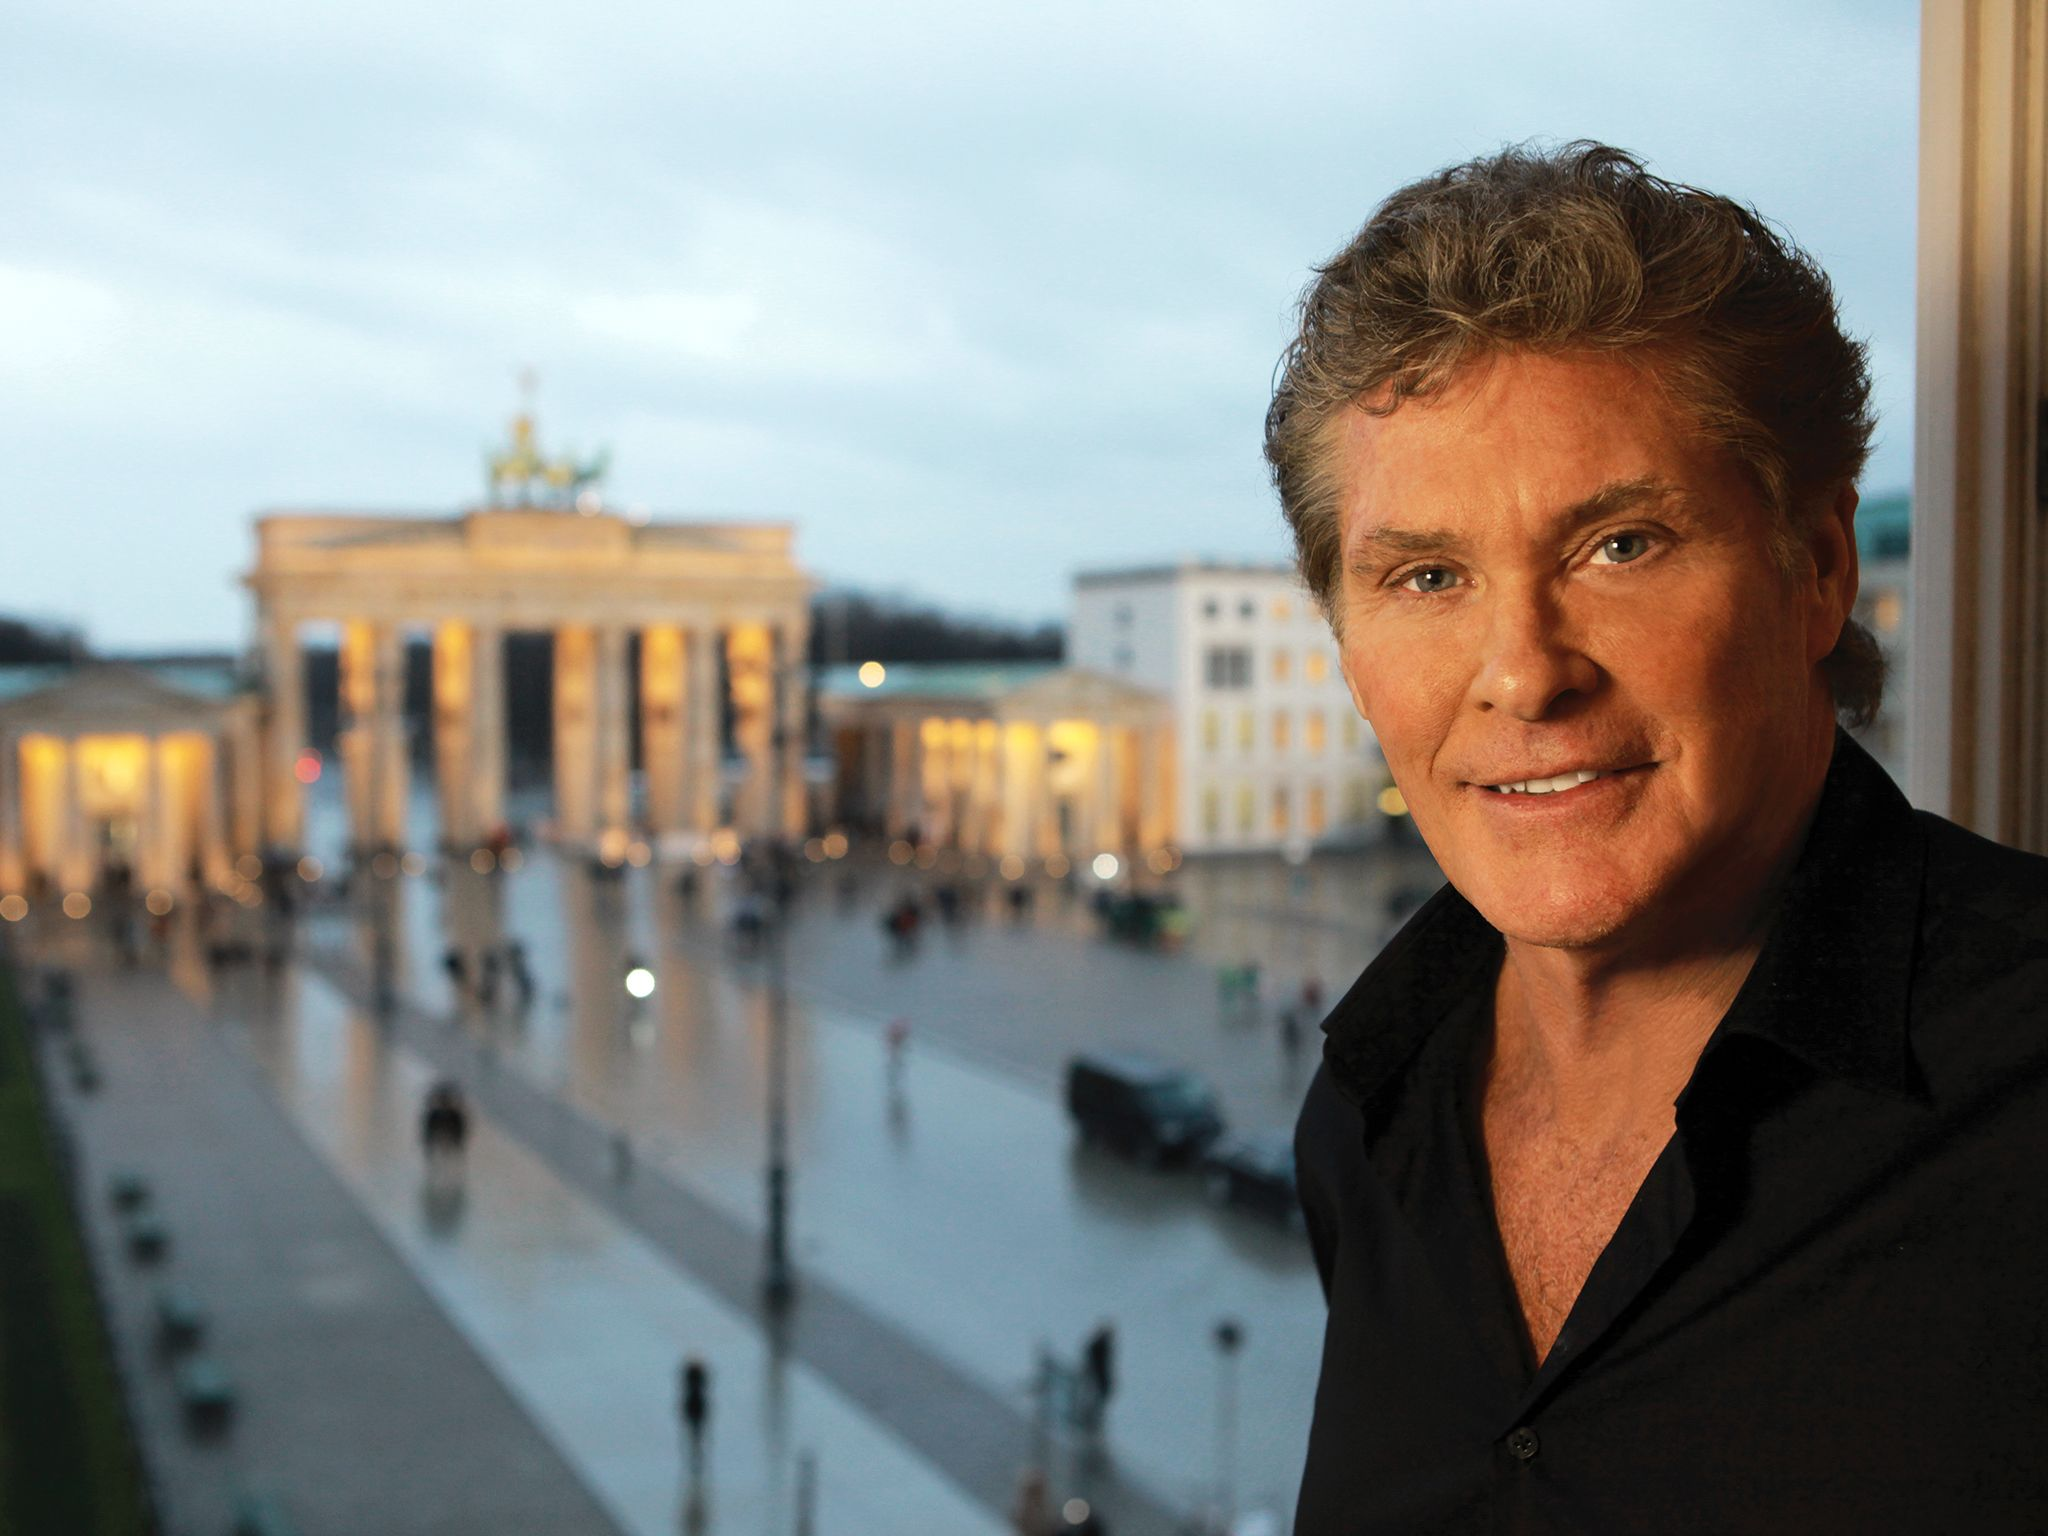 Berlin, Germany: David Hasselhoff in his hotel room overlooking the Brandenburg Gate. This image ... [Dagens foto - november 2014]